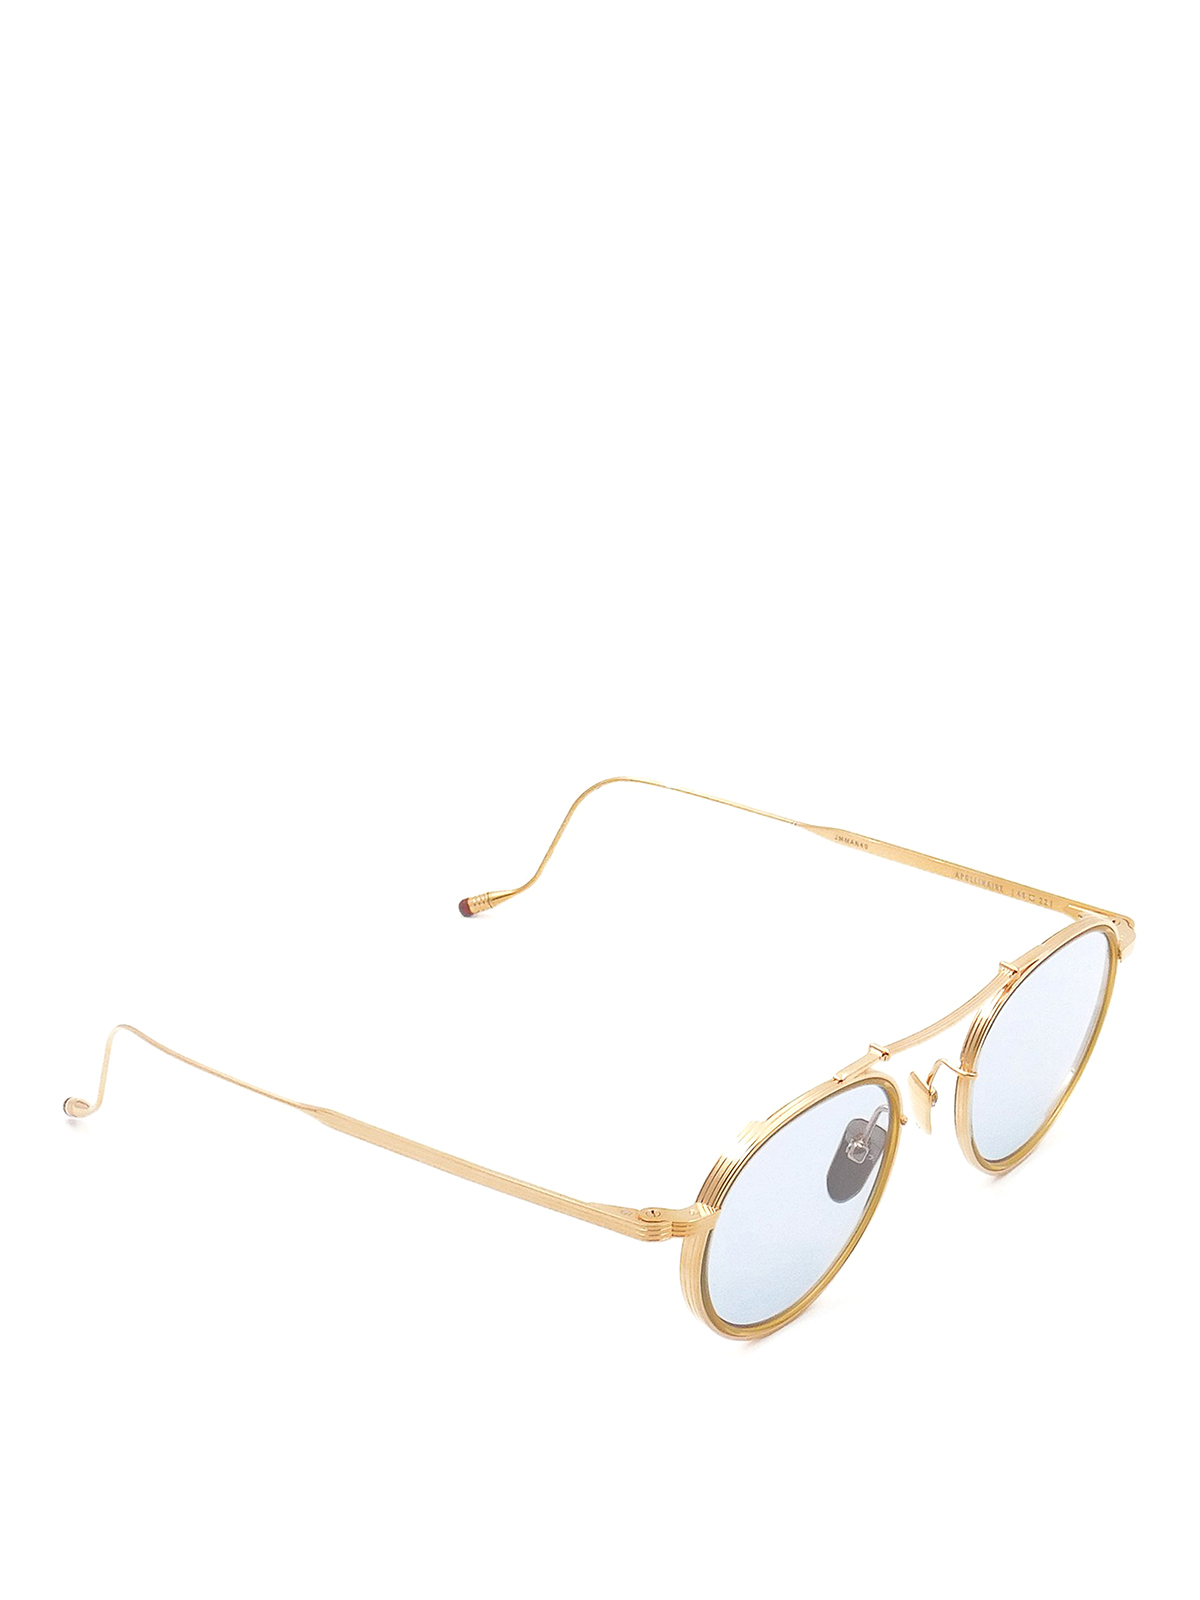 Jacques Marie Mage Blue Lenses Double Bridge Sunglasses In Gold